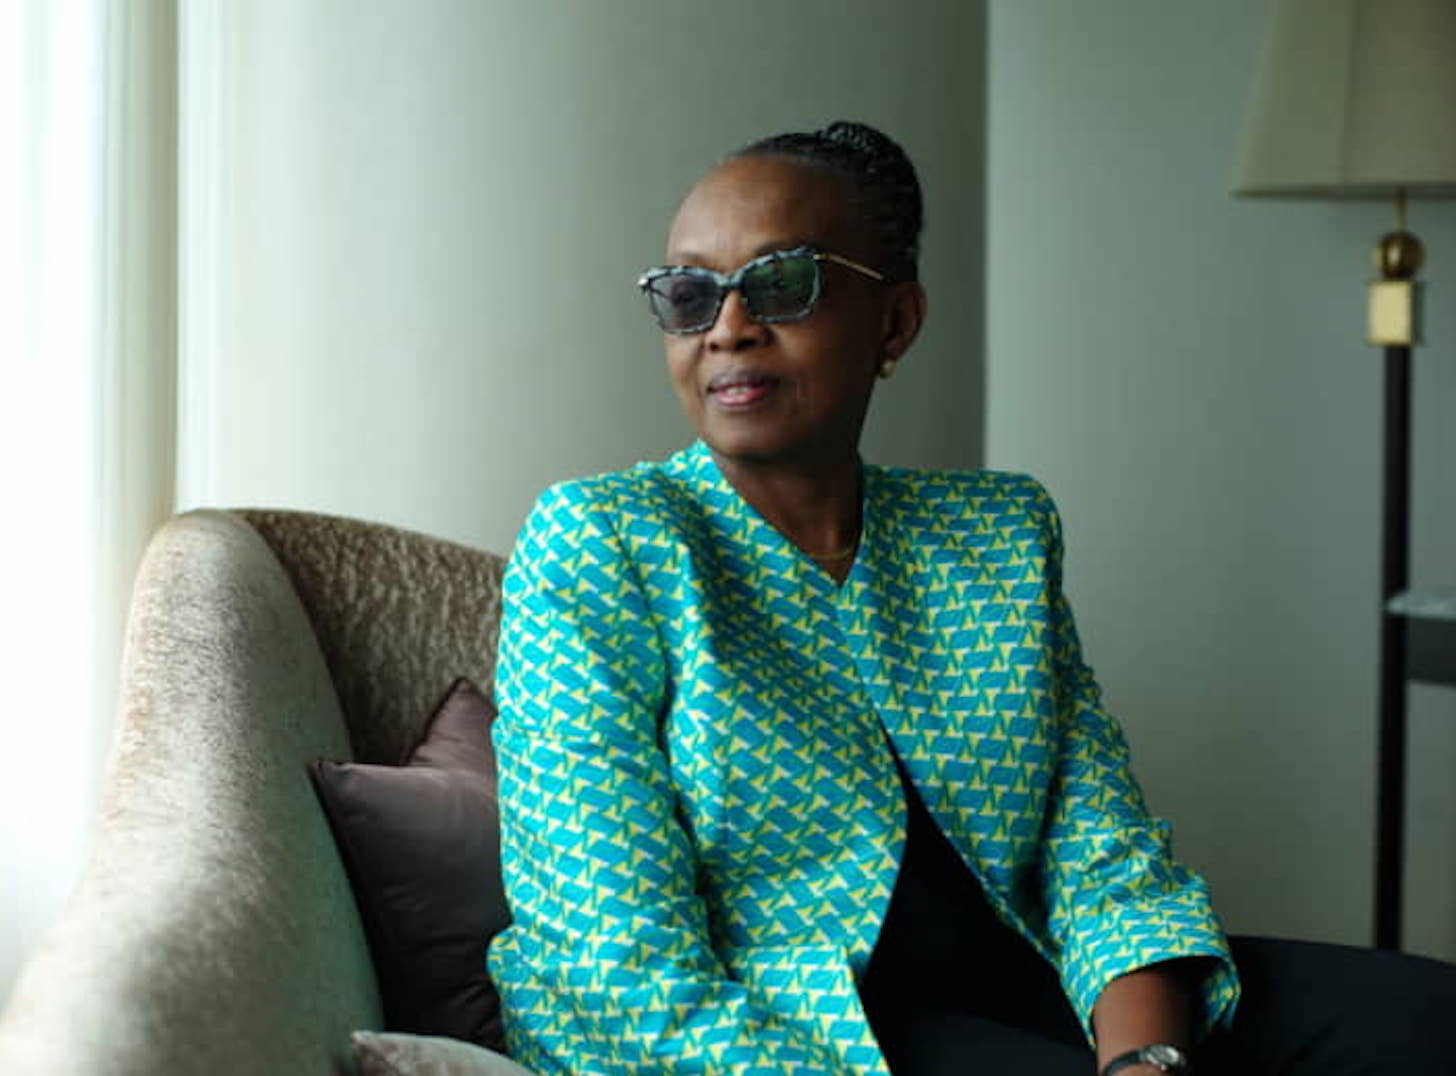 Matshidiso Moeti, the World Health Organization's regional director for Africa, is interviewed at a hotel in Yokohama on Thursday | Photo: RYUSEI TAKAHASHI